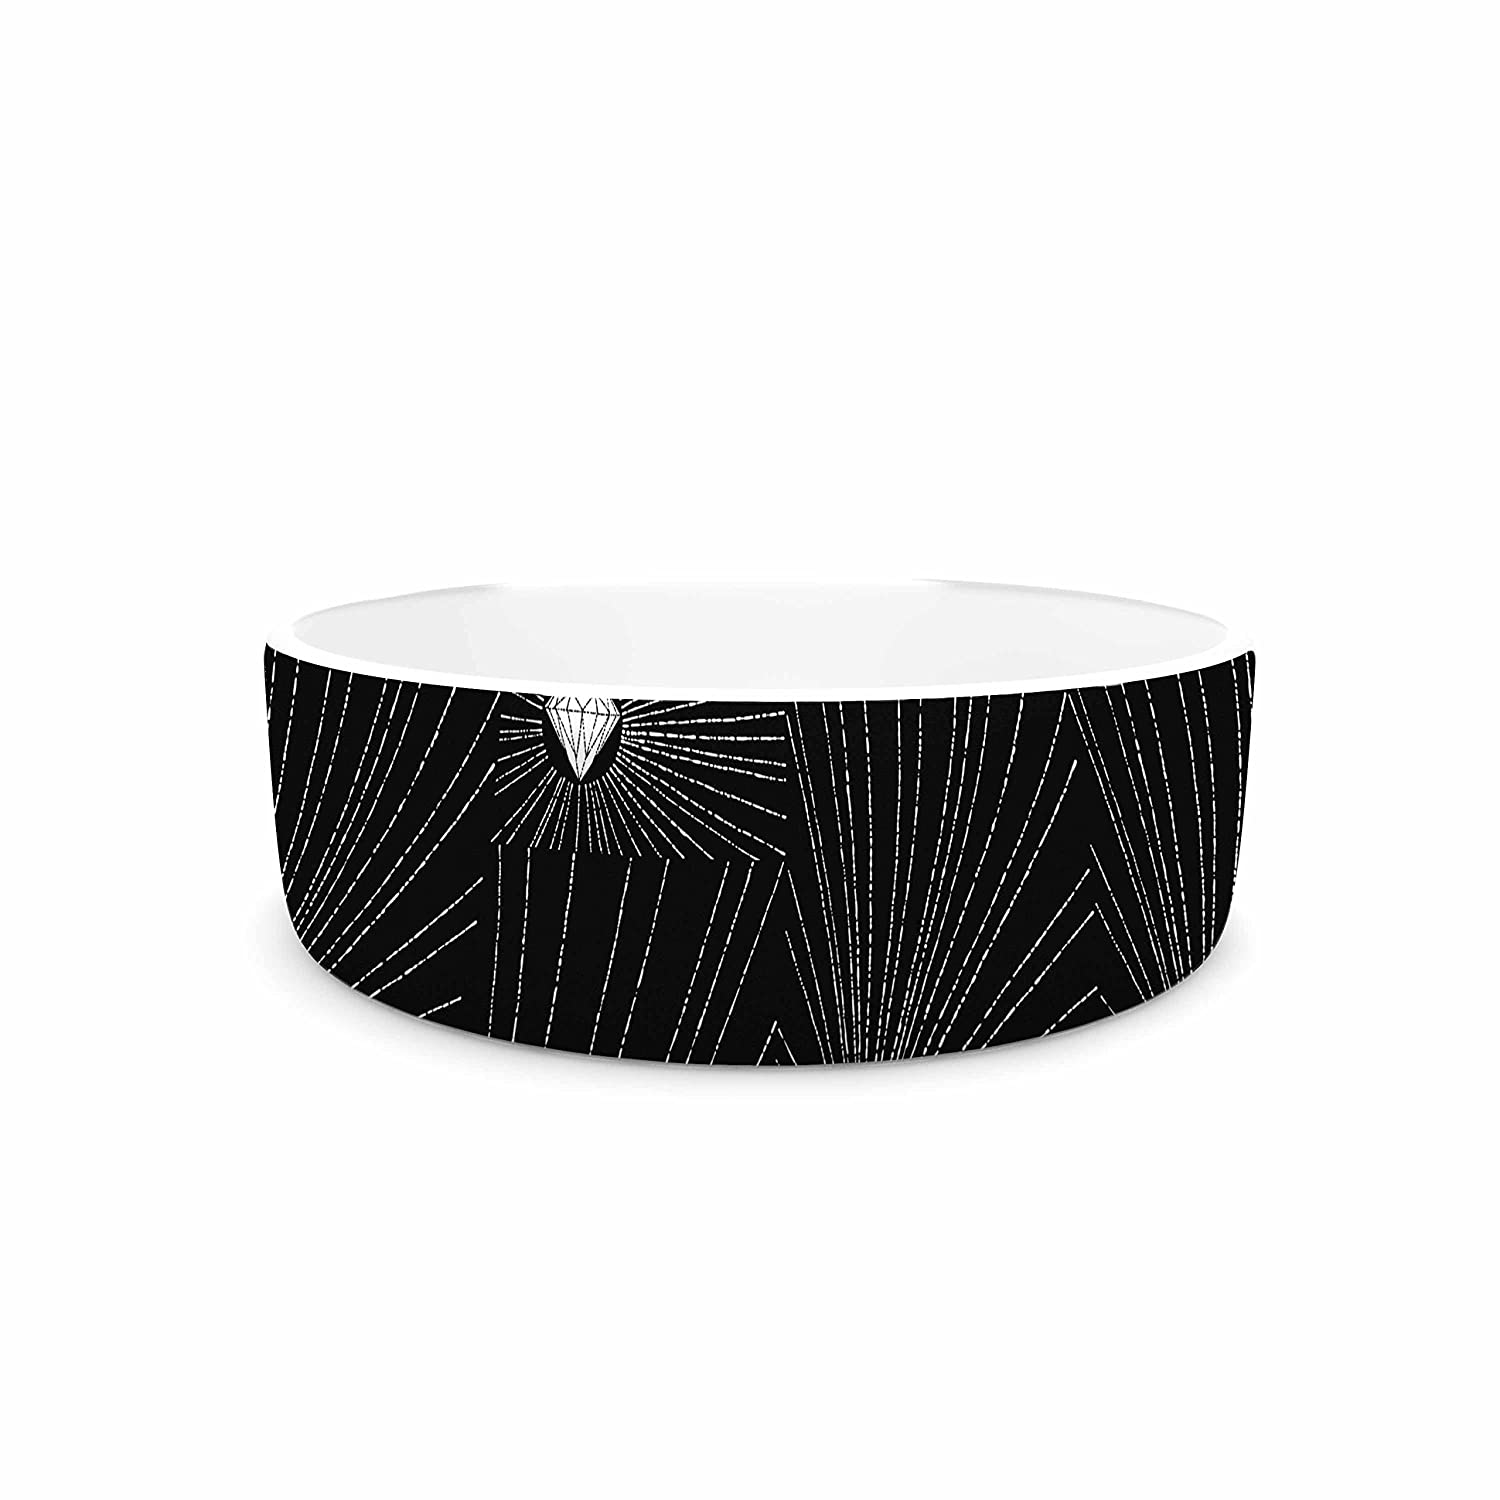 4.75\ KESS InHouse BarmalisiRTB Diamond  Black White Pet Bowl, 4.75